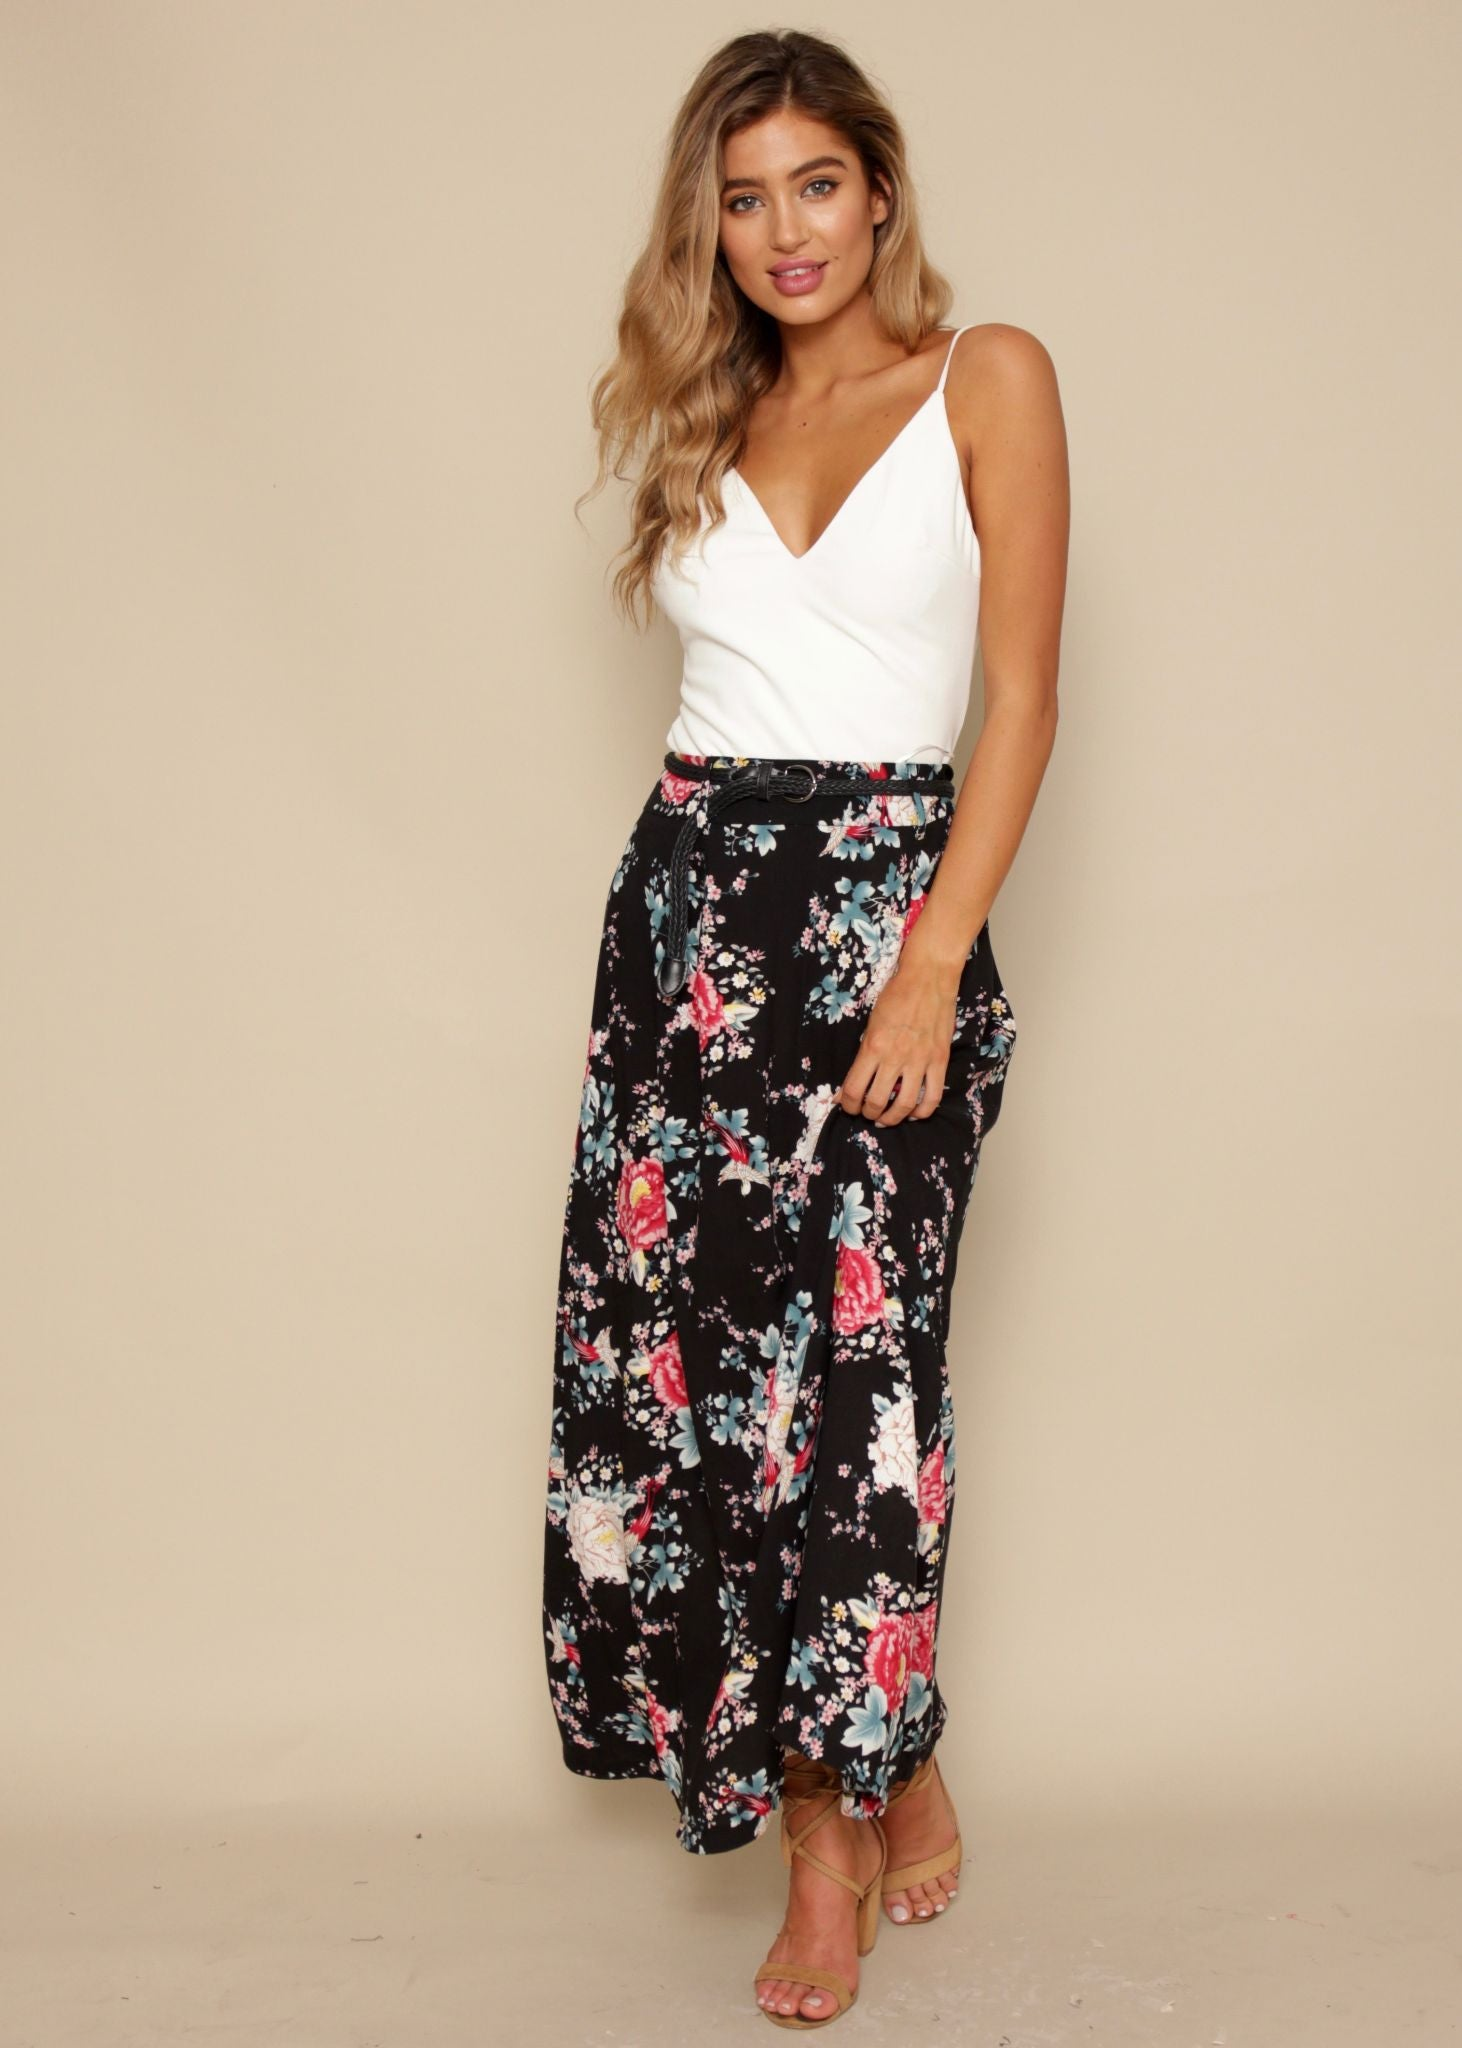 Sway My Way Maxi Skirt - Black Floral